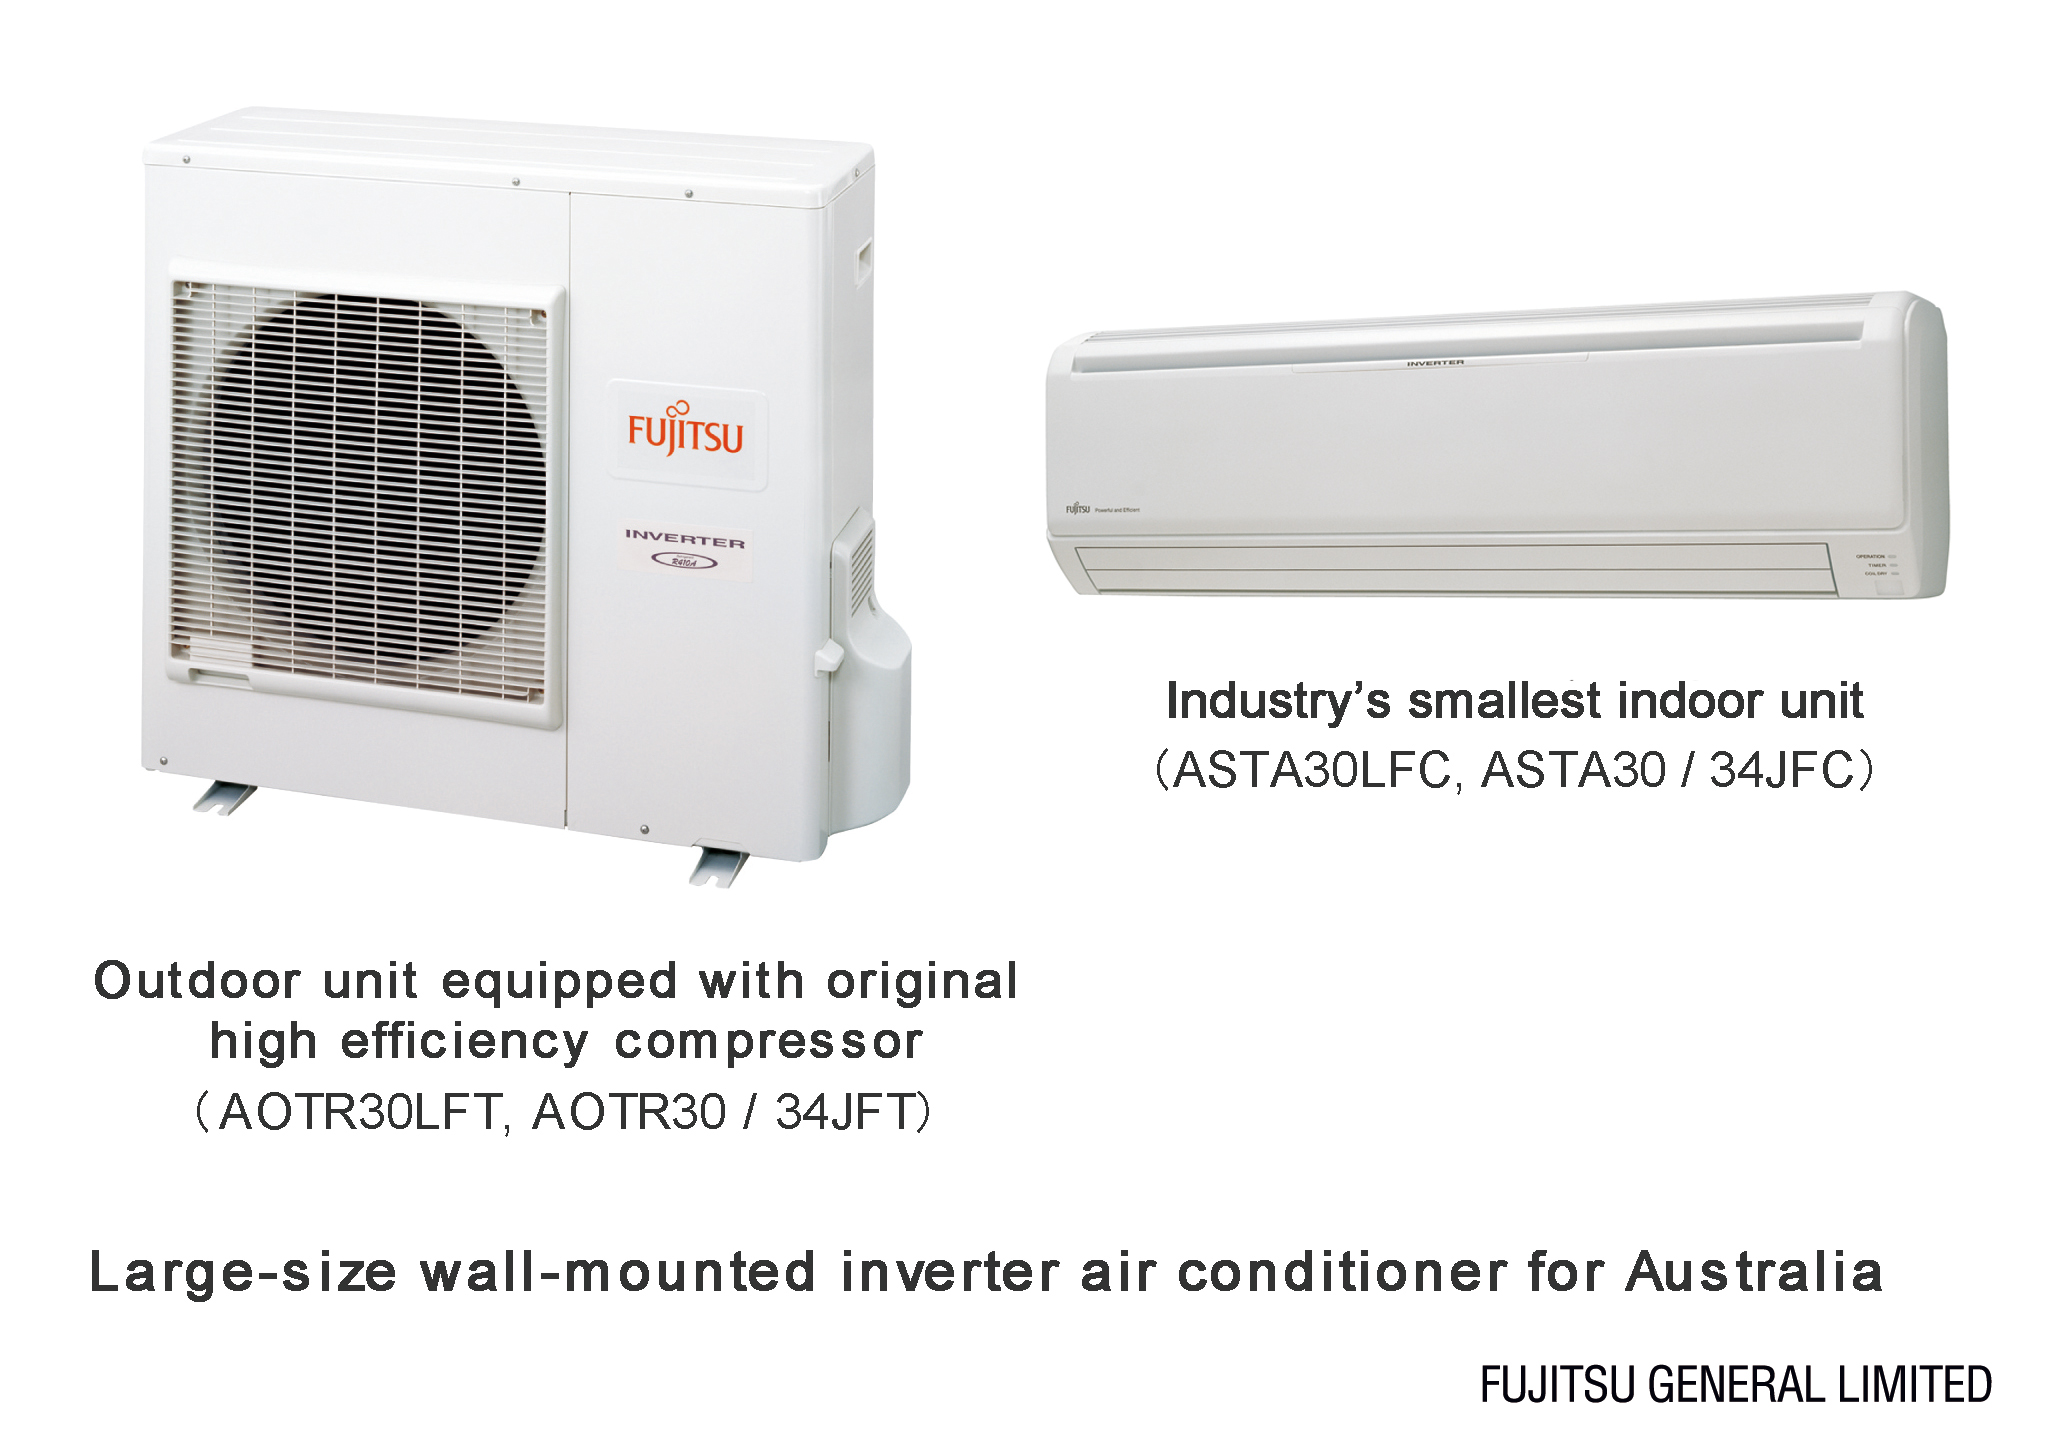 wall mounted inverter air conditioners for Australia FUJITSU GENERAL #7E5B4D